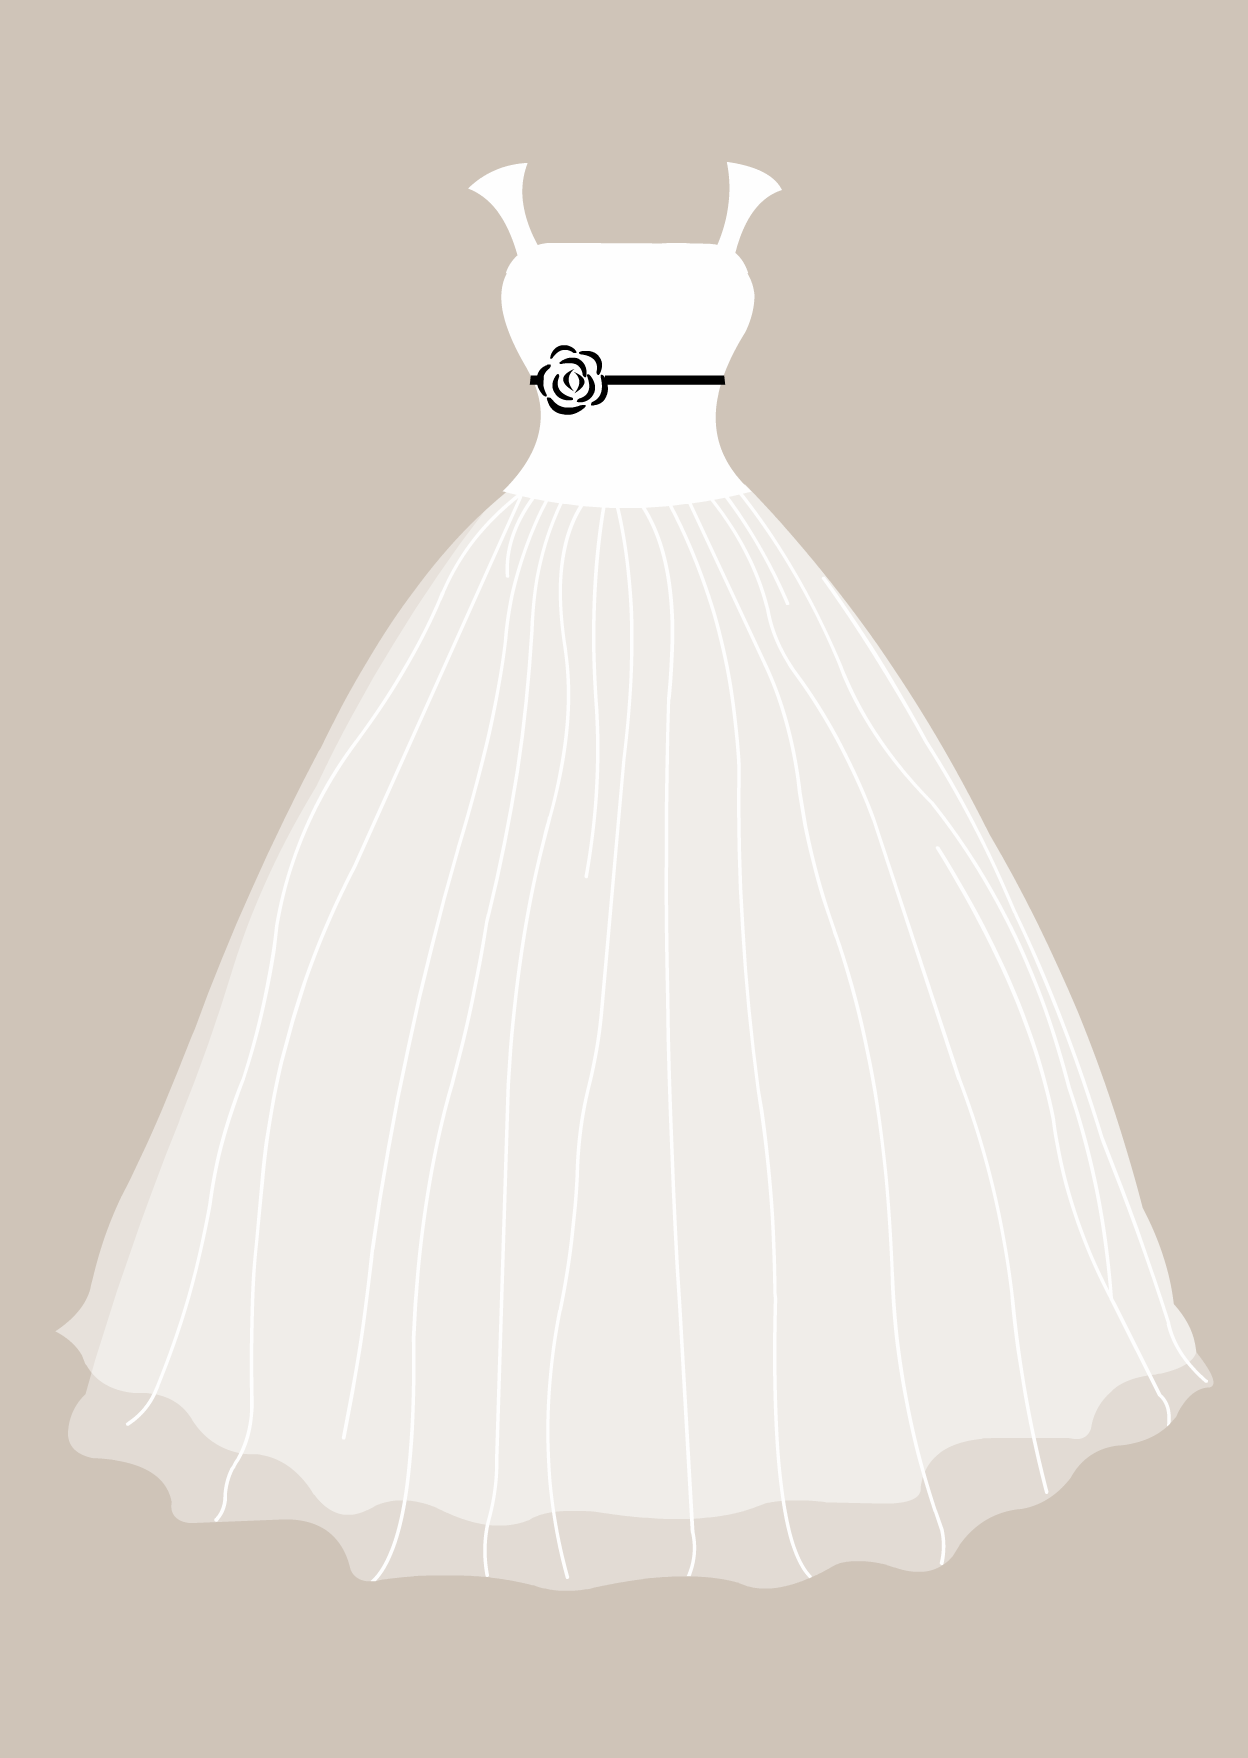 Clipart wedding dresses graphic freeuse download Free Wedding Dress Clipart, Download Free Clip Art, Free Clip Art on ... graphic freeuse download